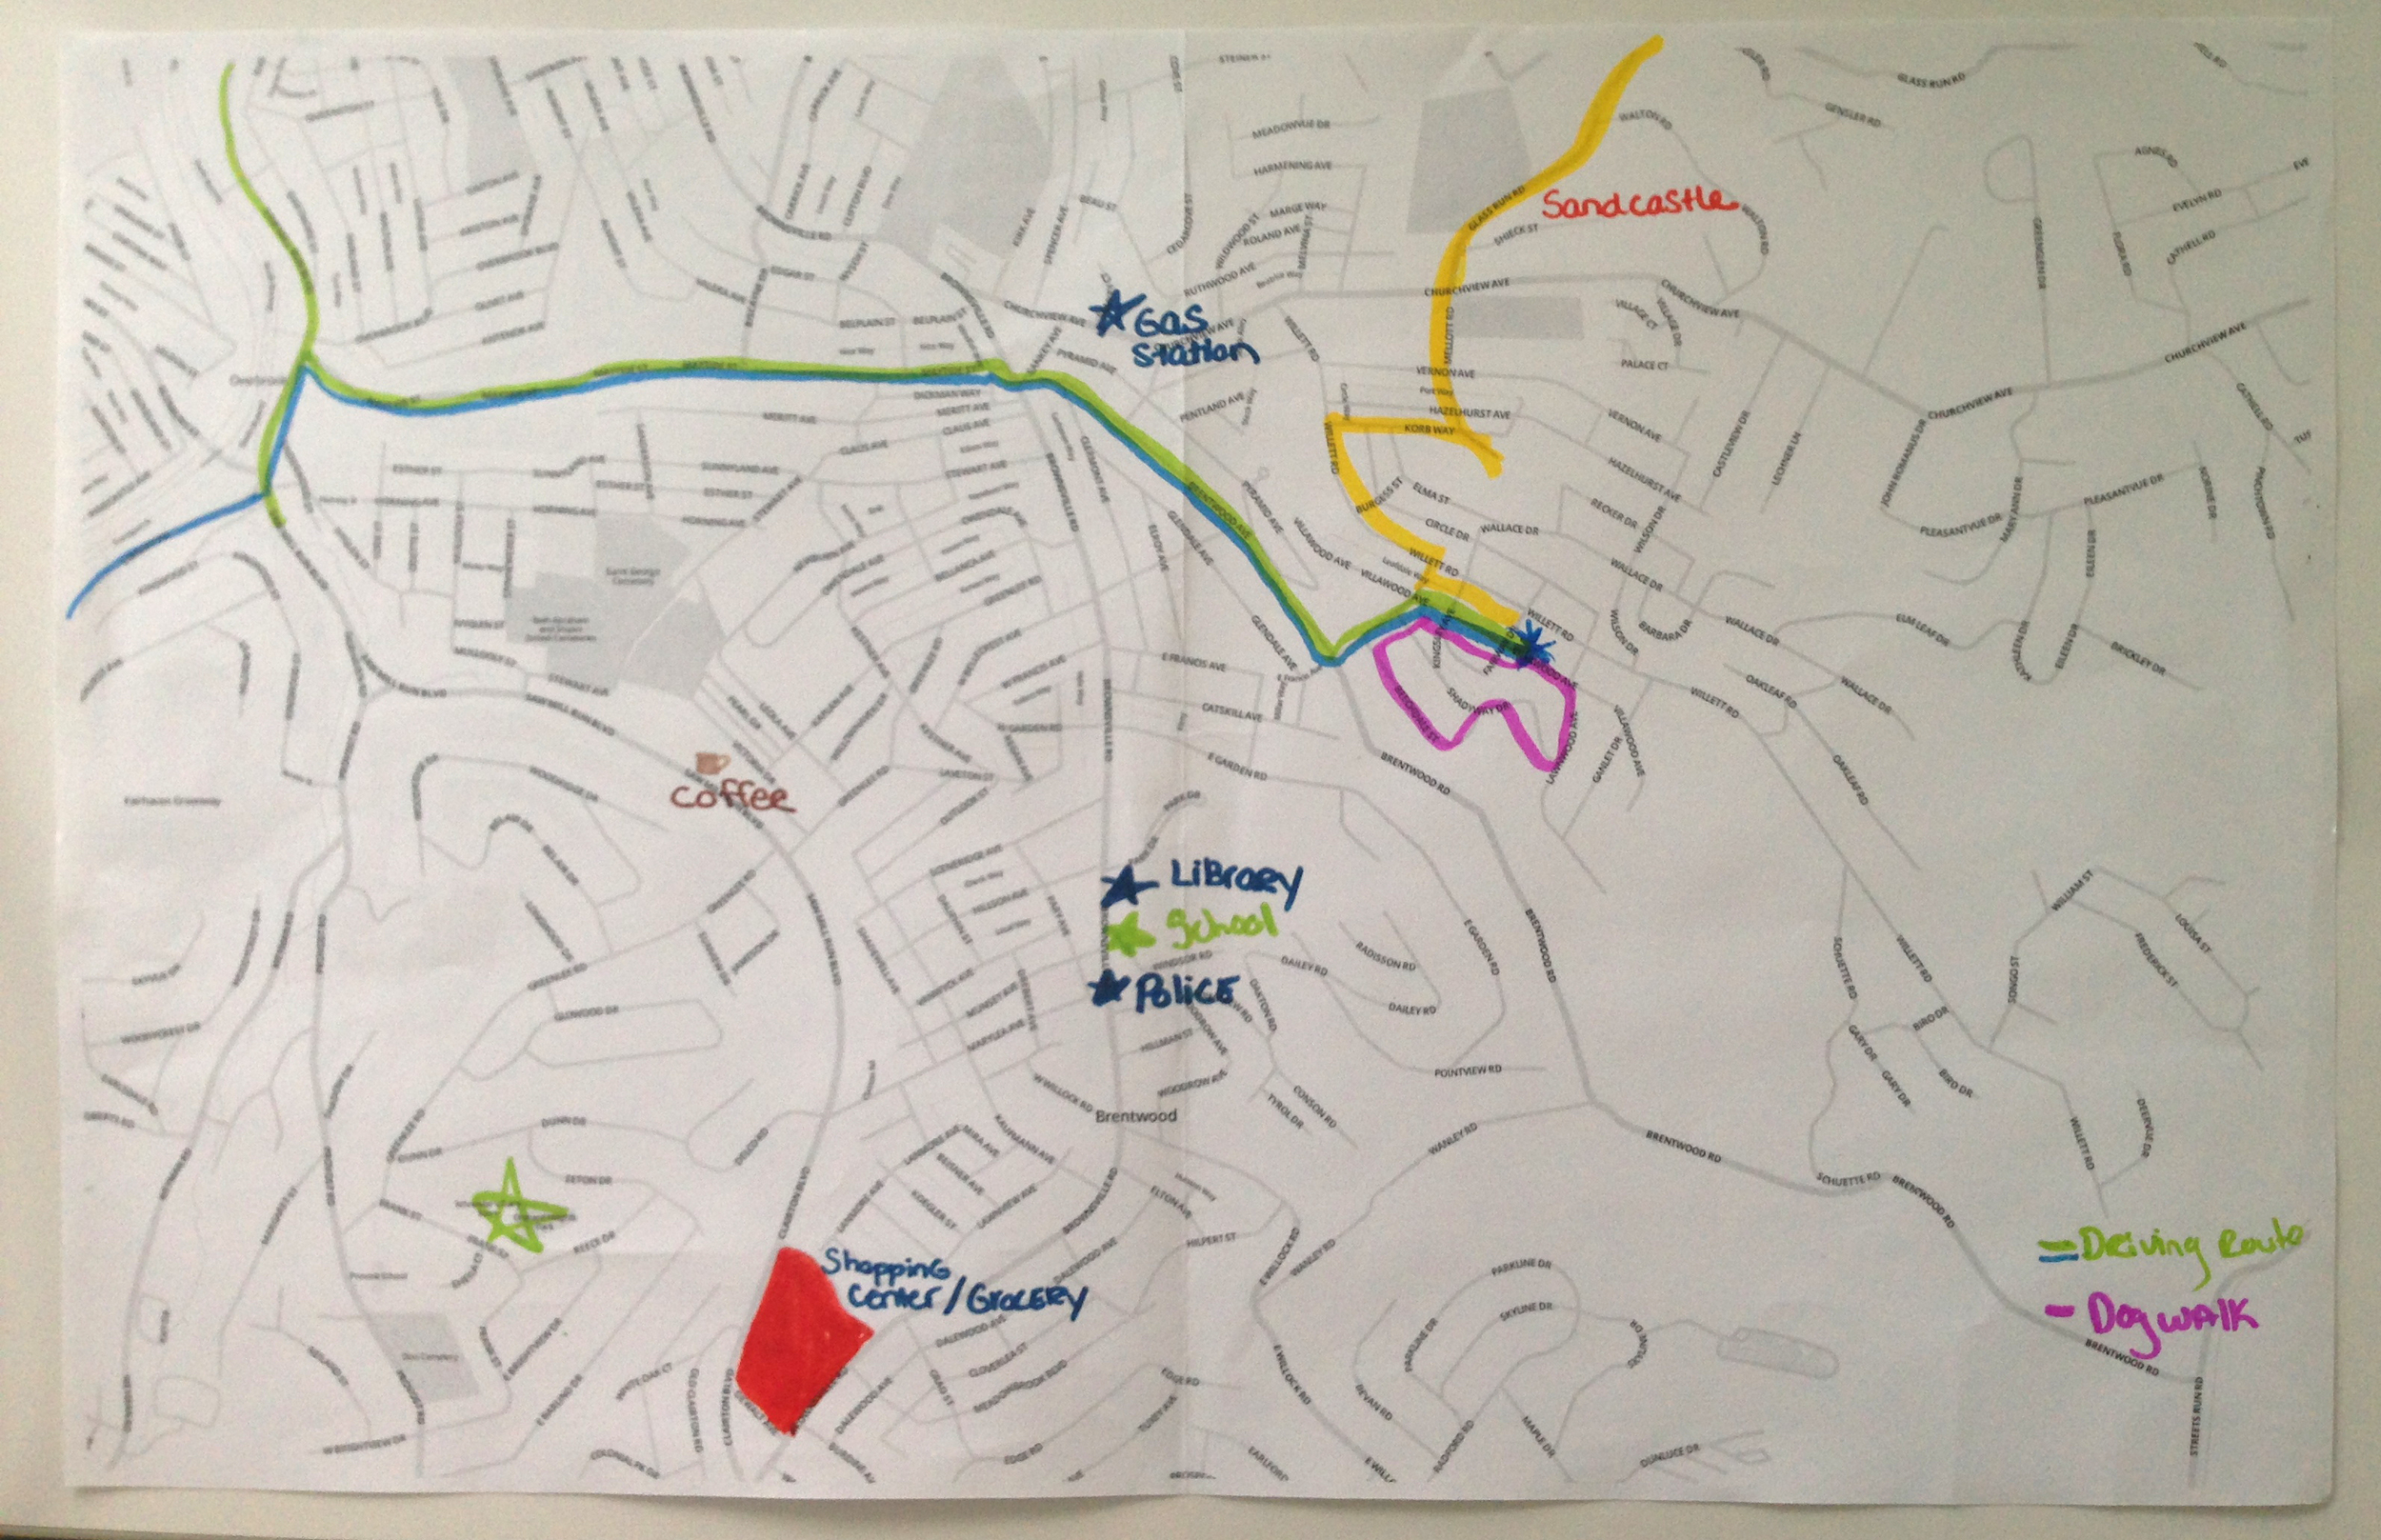 Neighborhood map drawn by an interviewee